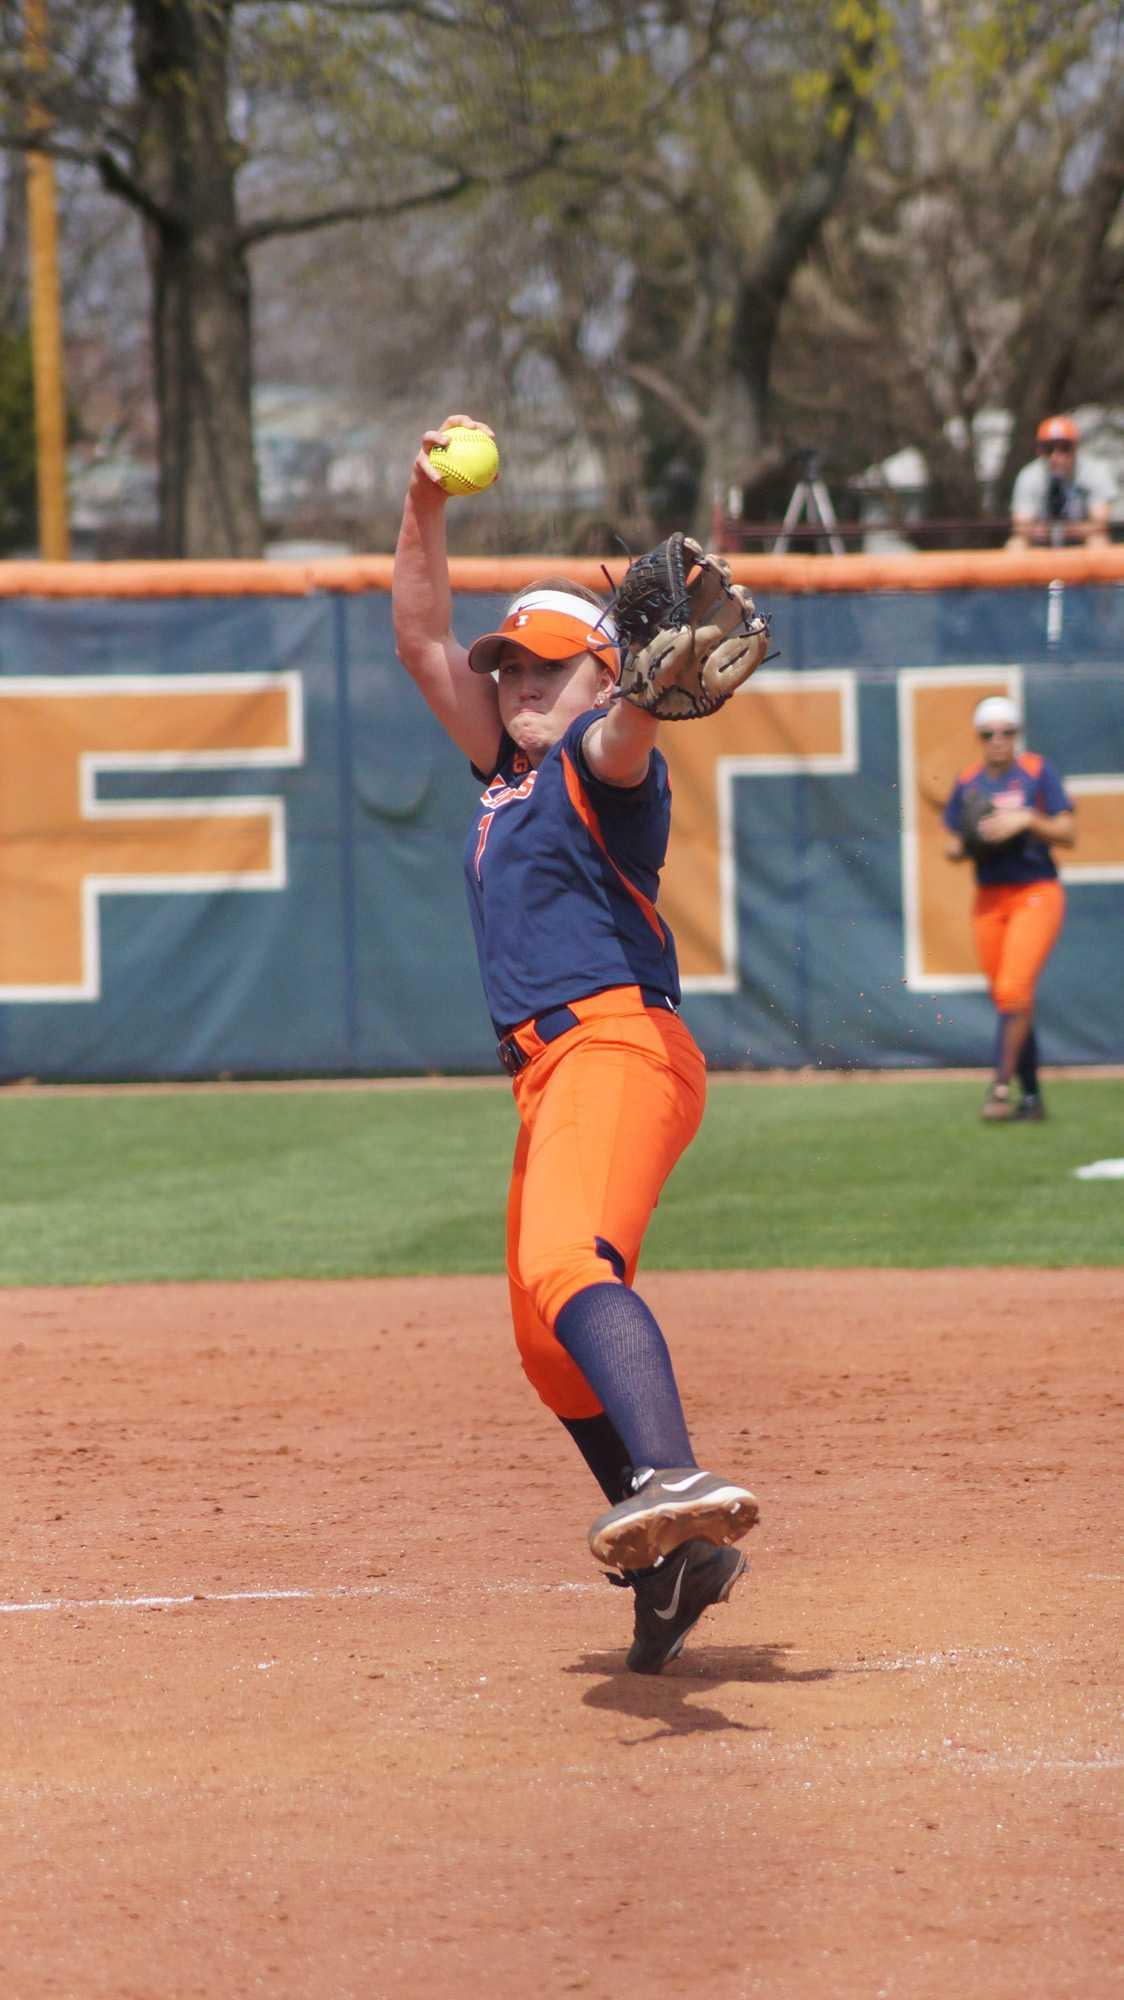 Illinois' Jade Vecvanags (7) pitches the ball during the softball game v. Wisconsin at Eichelberger Field on Saturday, Apr. 18, 2015. Illinois won 5-3.